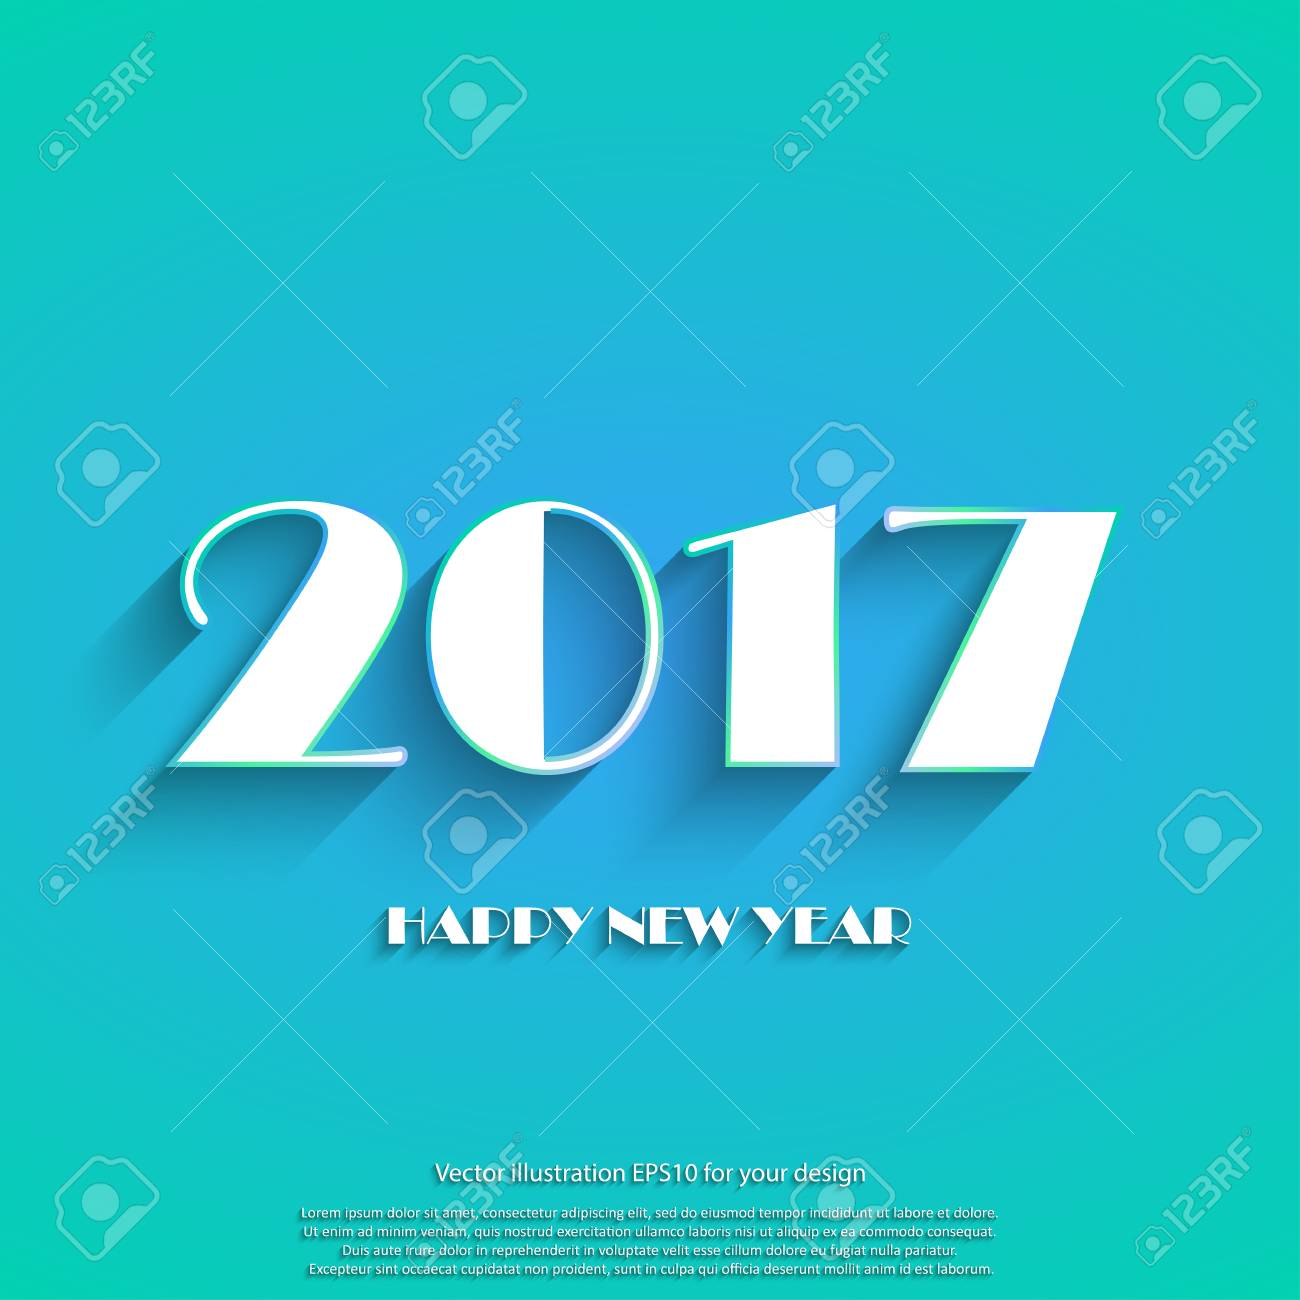 Happy New Year 2017 White Text On Blue Background Template Holidays